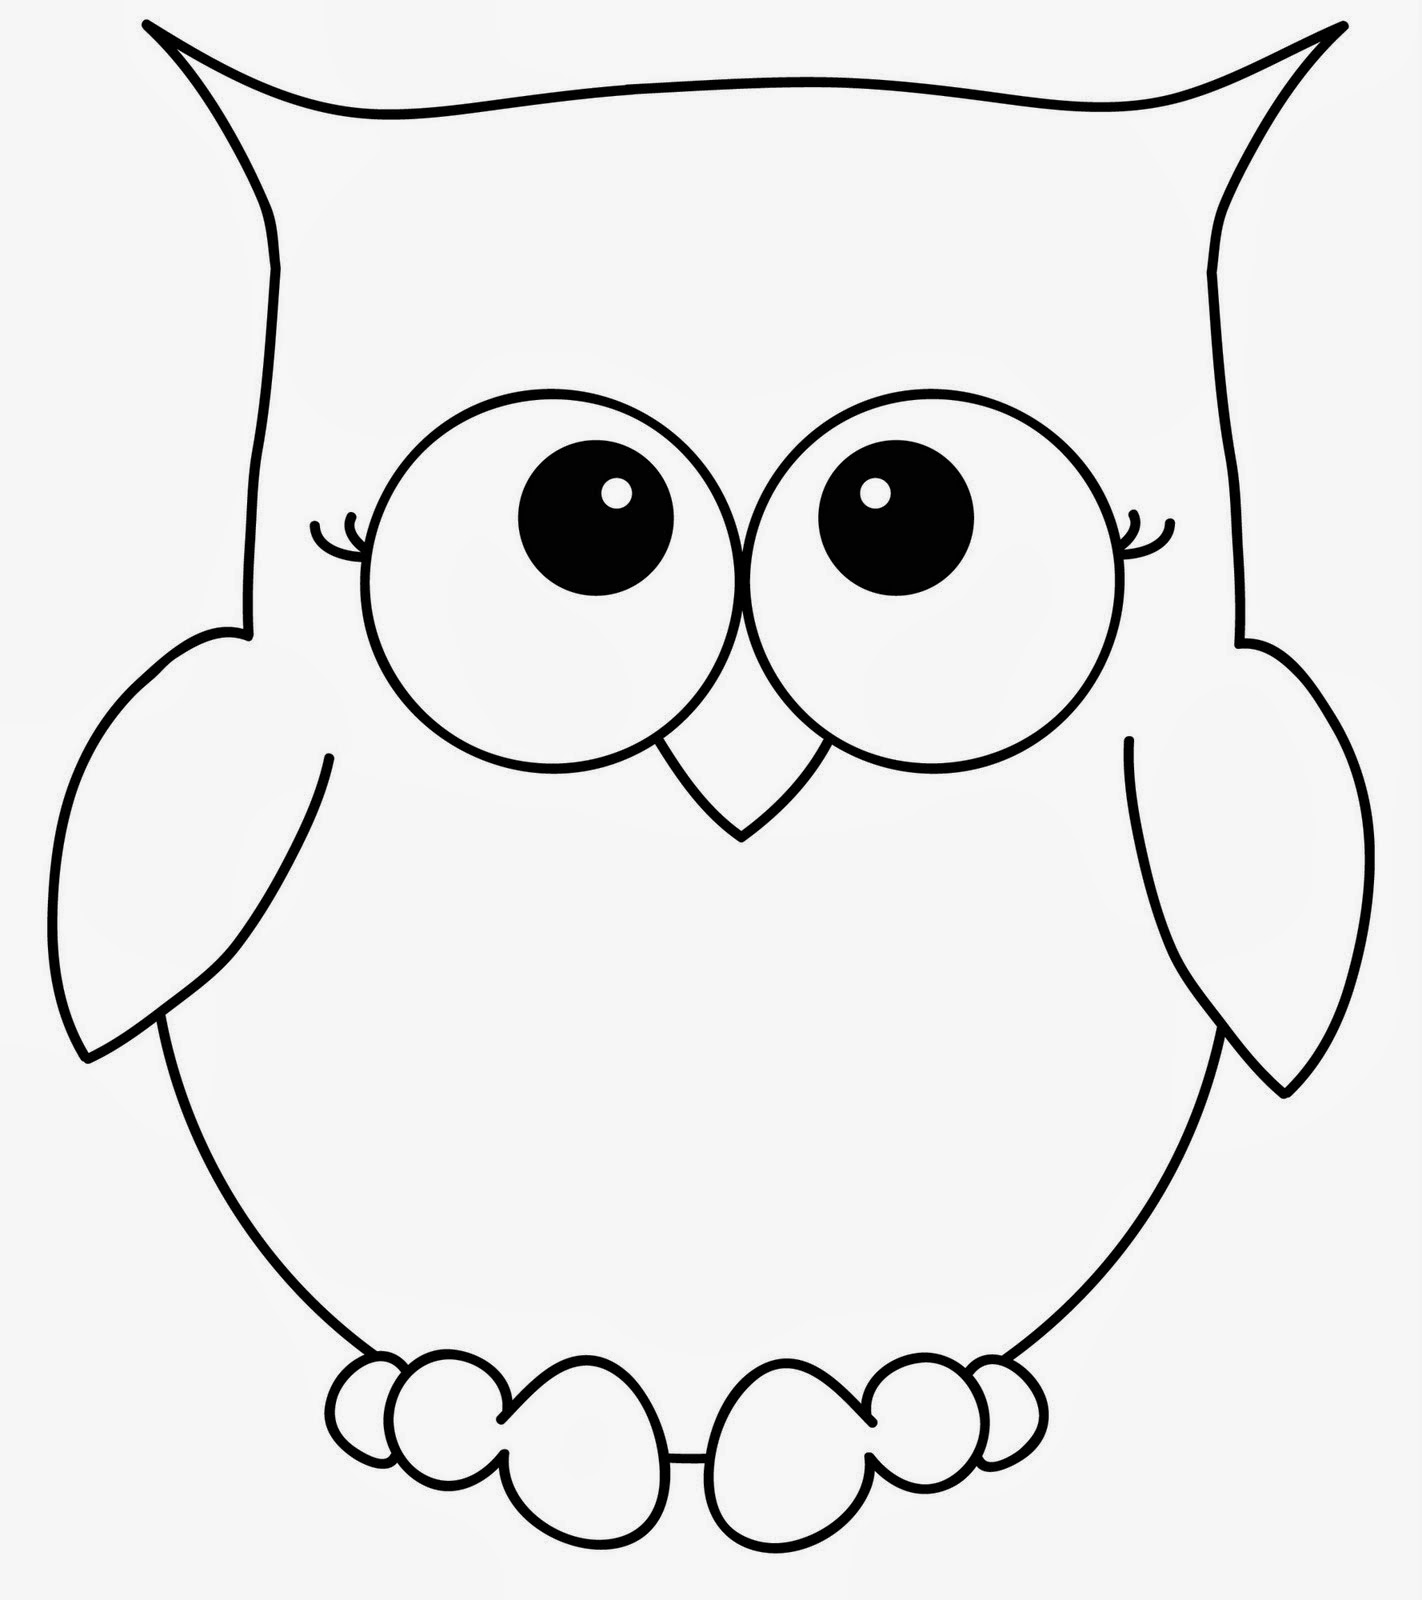 coloring pages of cute owls-#6